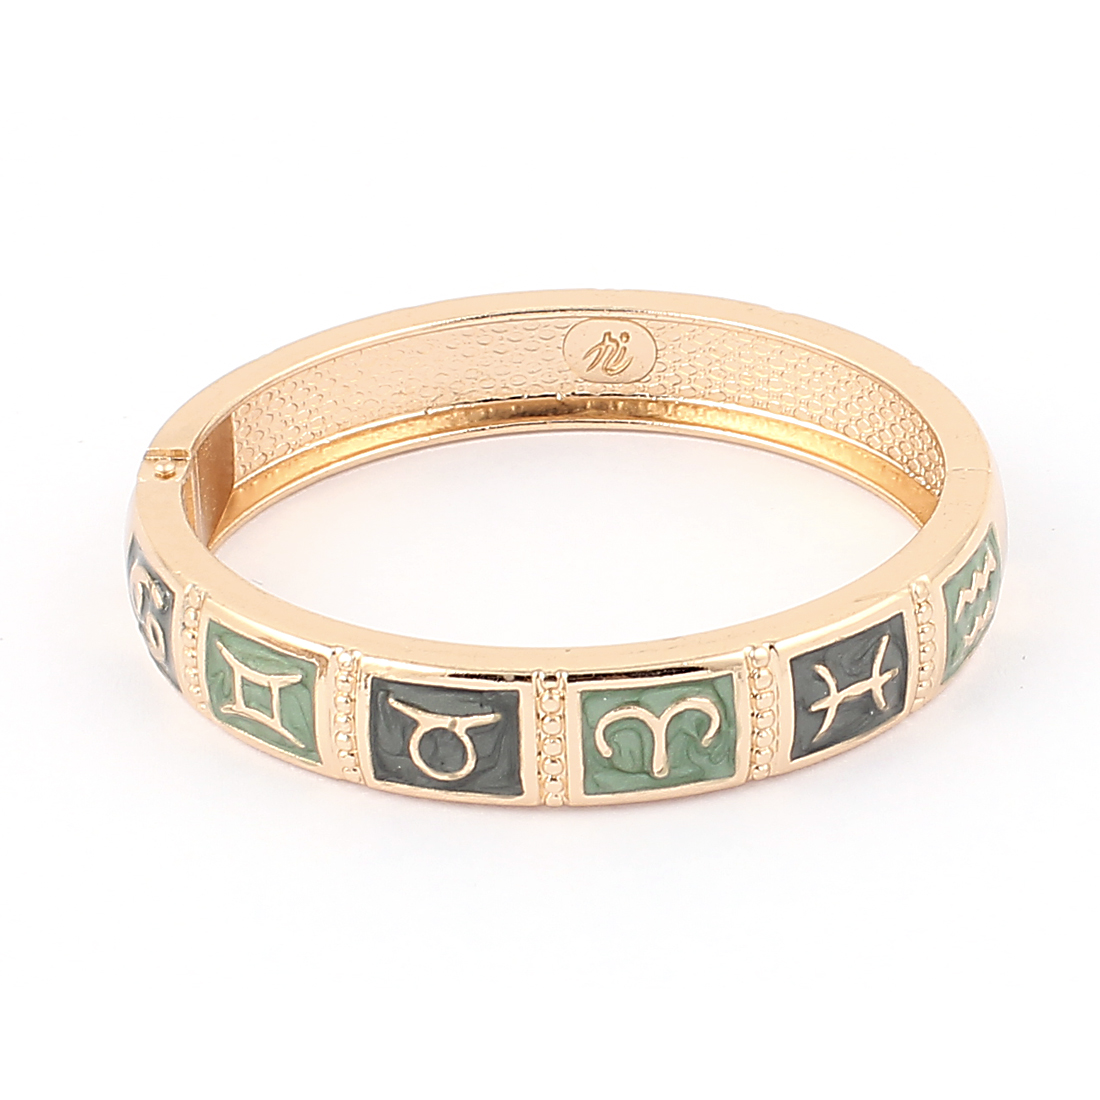 "Round Wrist Gold Tone Metal Hinged Wide 12 Constellations Pattern Bracelet Green Bangle 0.4"" Width"